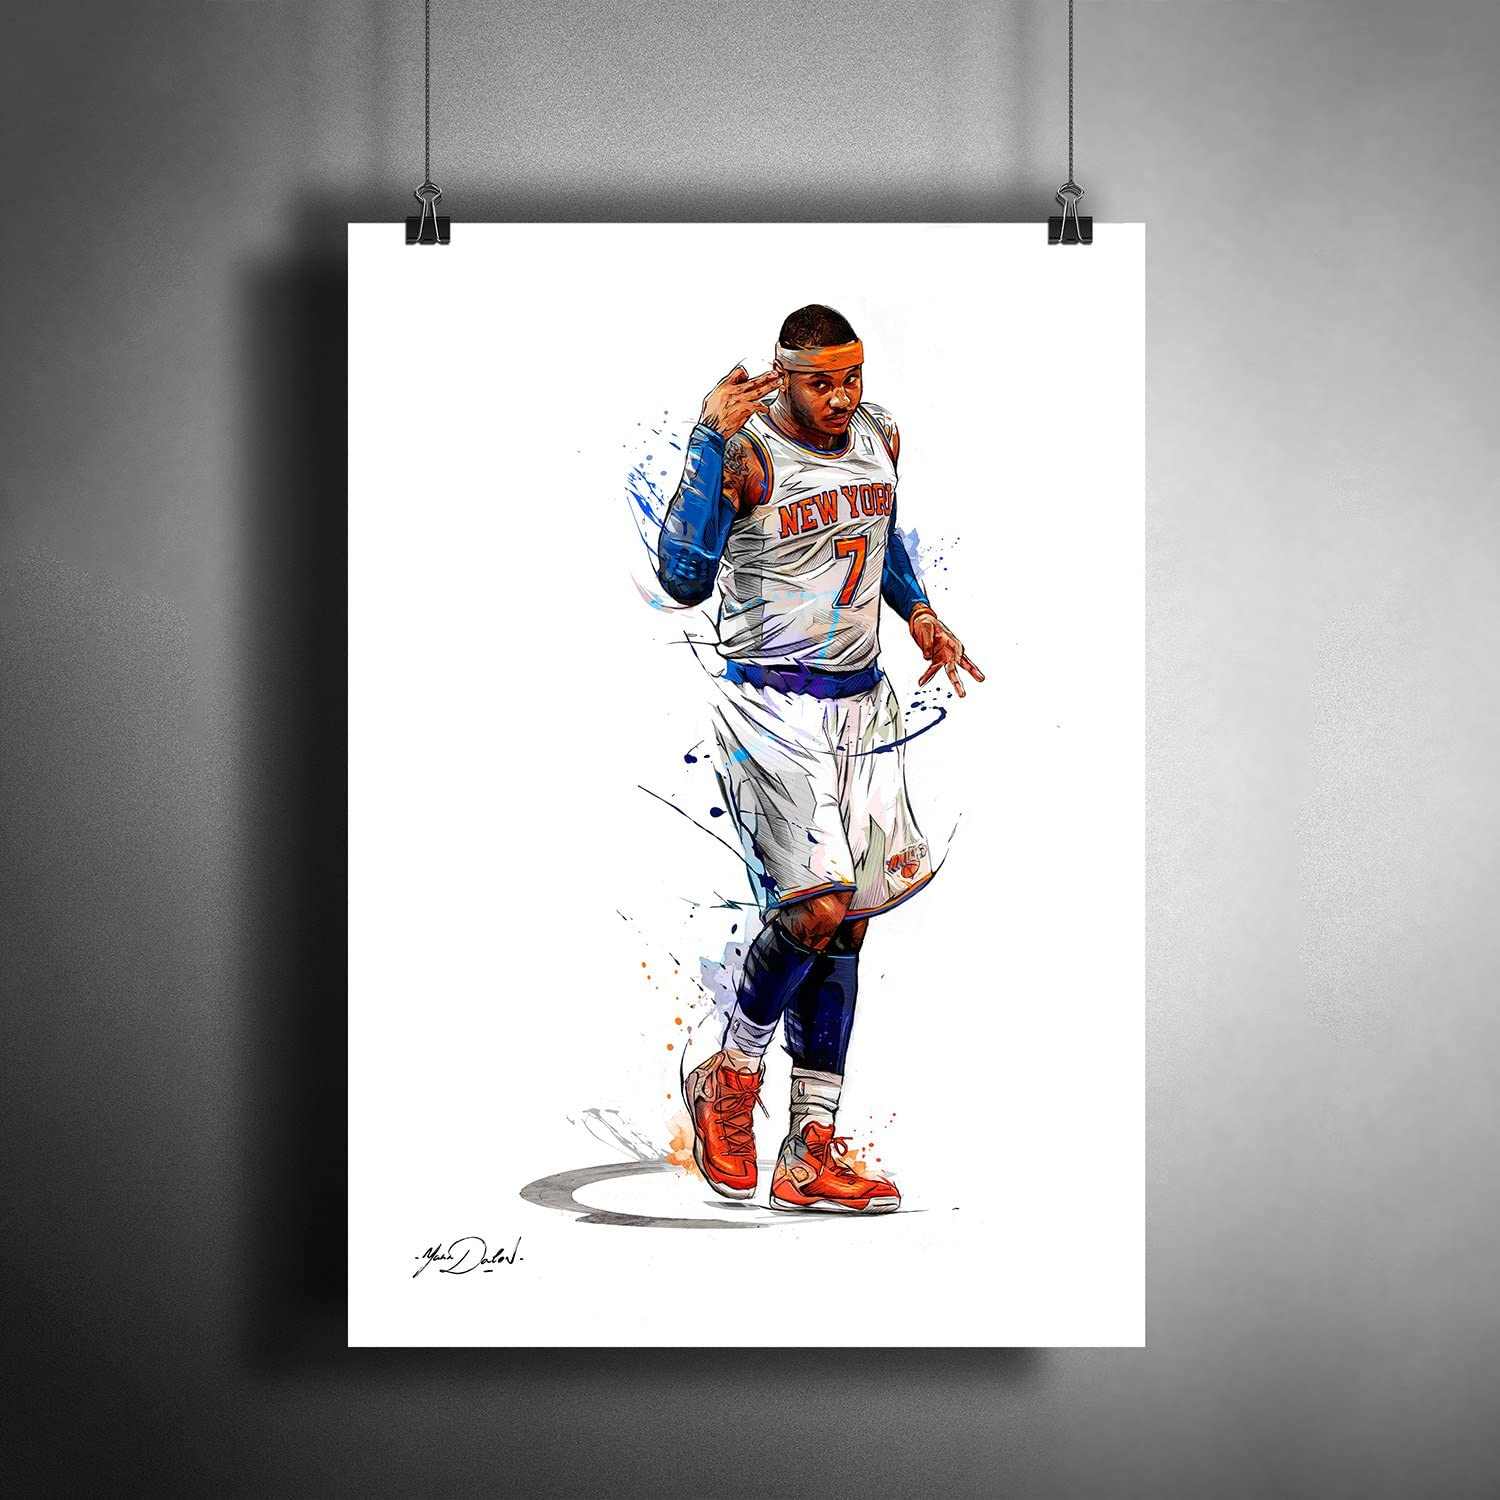 Carmelo Anthony NBA Basketball Art Poster Photo Print Decor ((A3 Size (297×420 mm (11,7×16,5 inches))